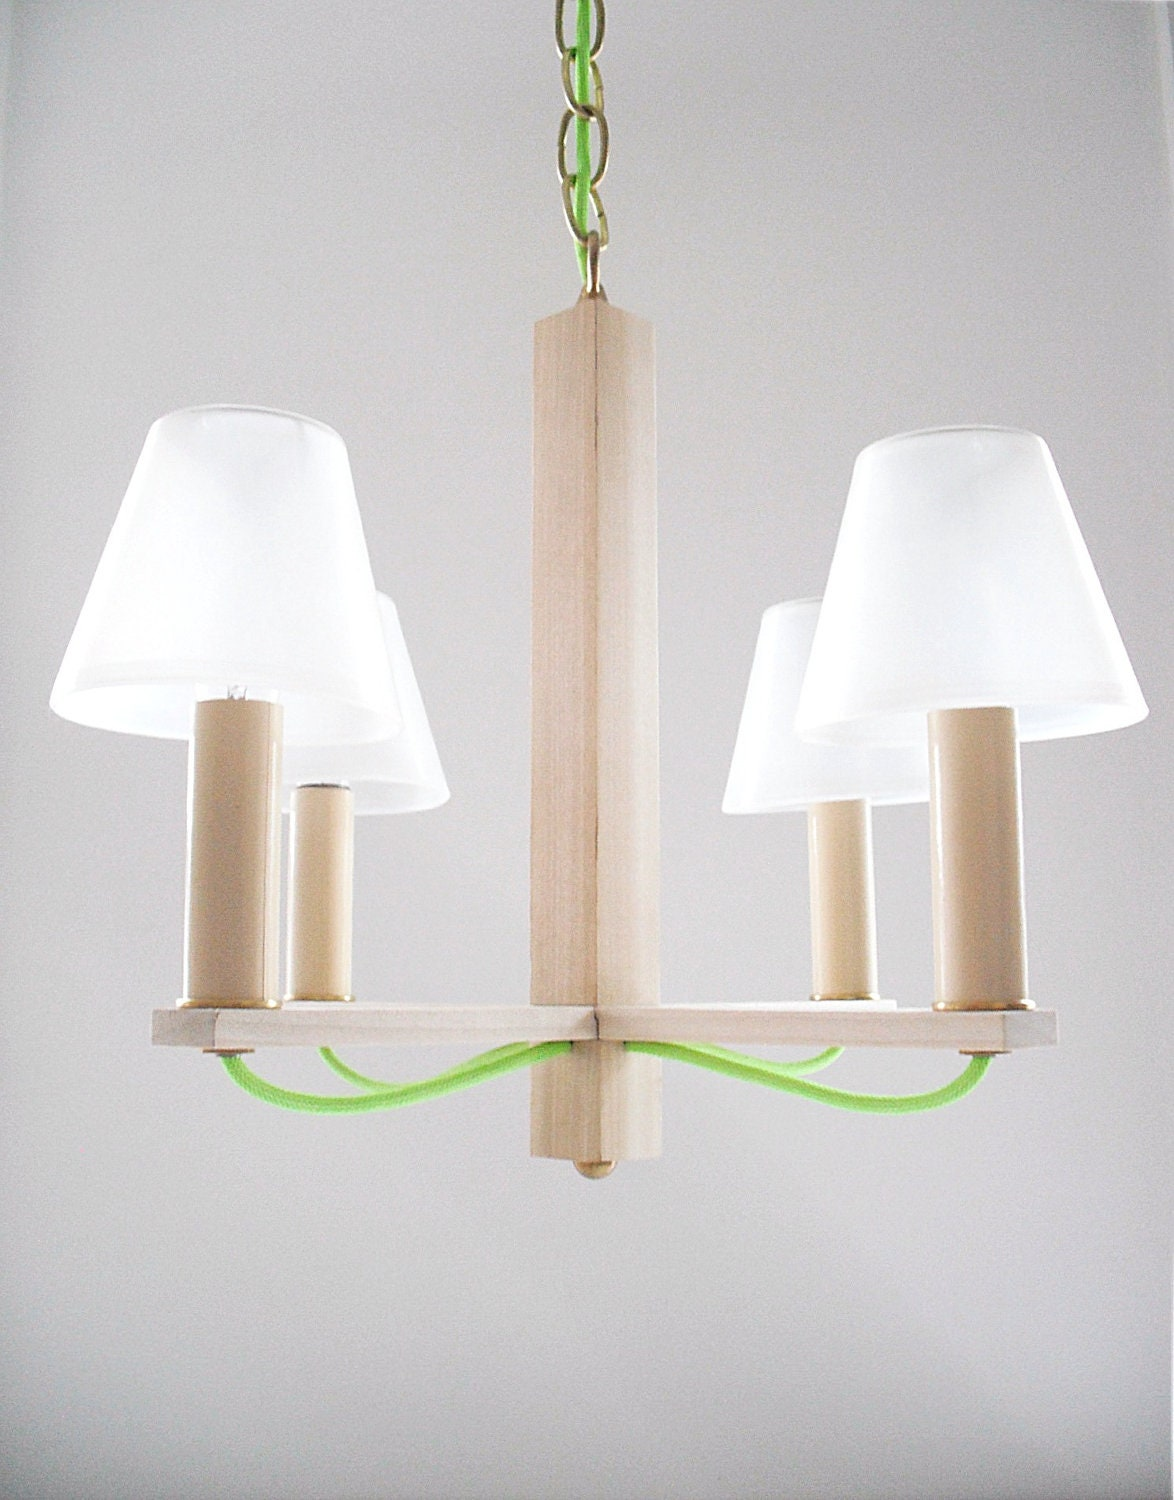 The Simple Chandelier